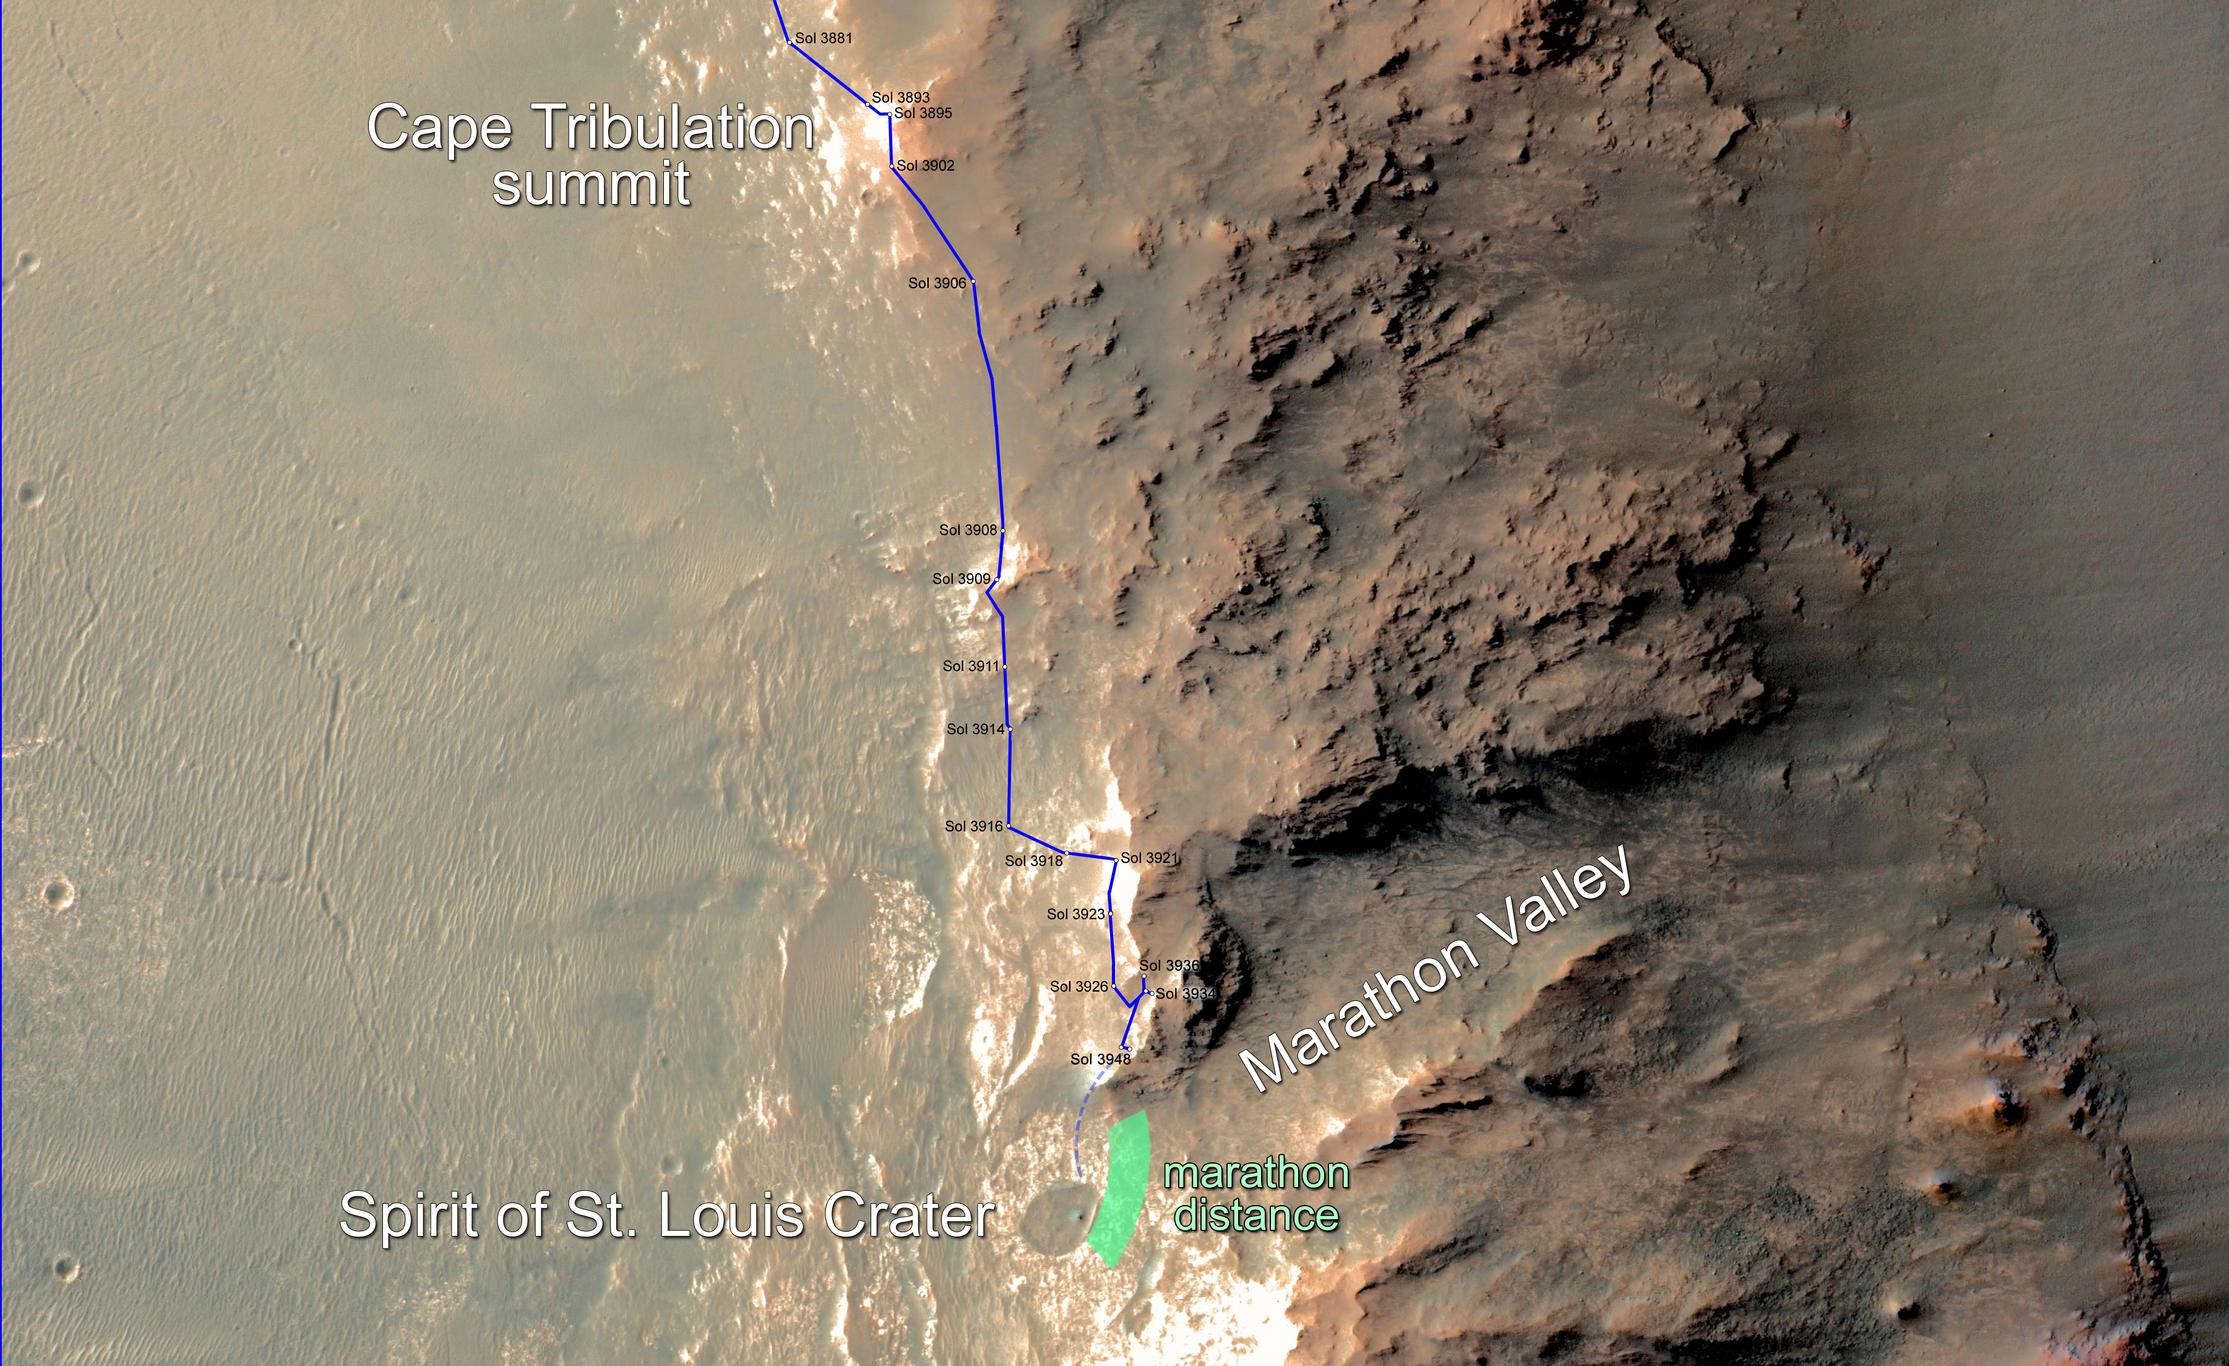 This map updates progress that NASA's Mars Exploration Rover Opportunity is making toward reaching a driving distance equivalent to a marathon footrace. It indicates the rover position on March 5, 2015, relative to where it could surpass that distance.